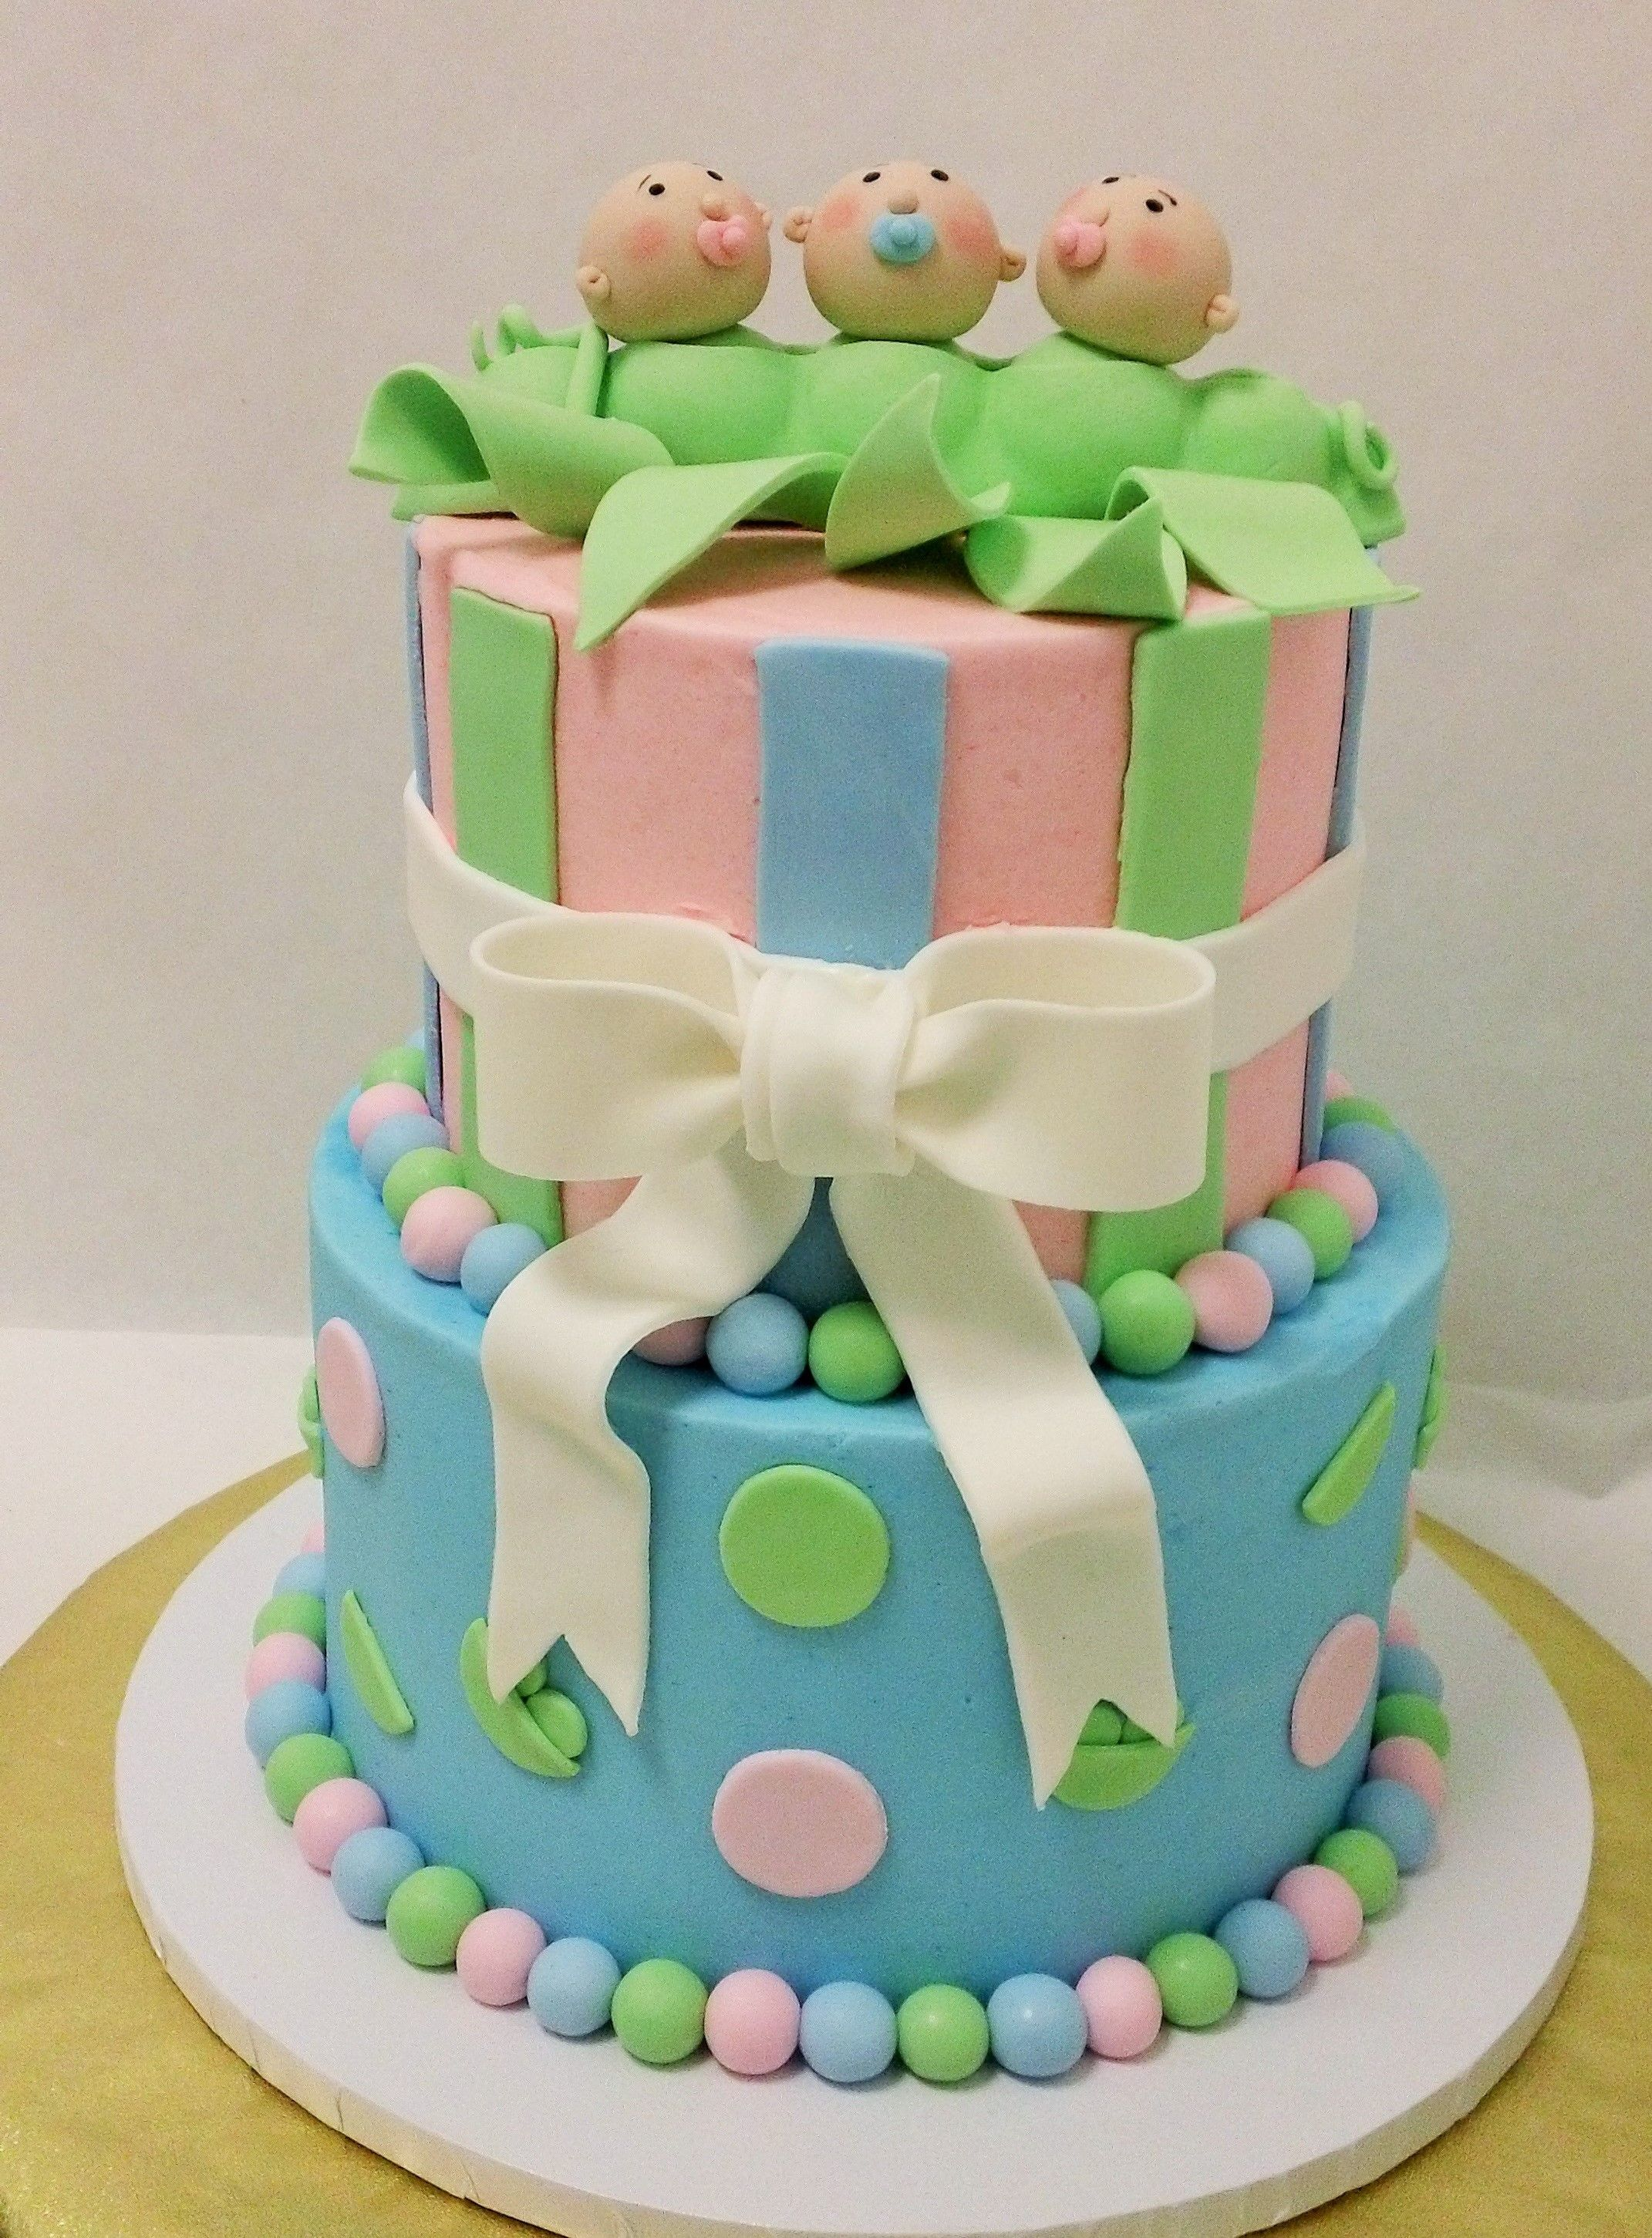 Peas In A Pod Cake Baby Shower Cake For Triplets With Images